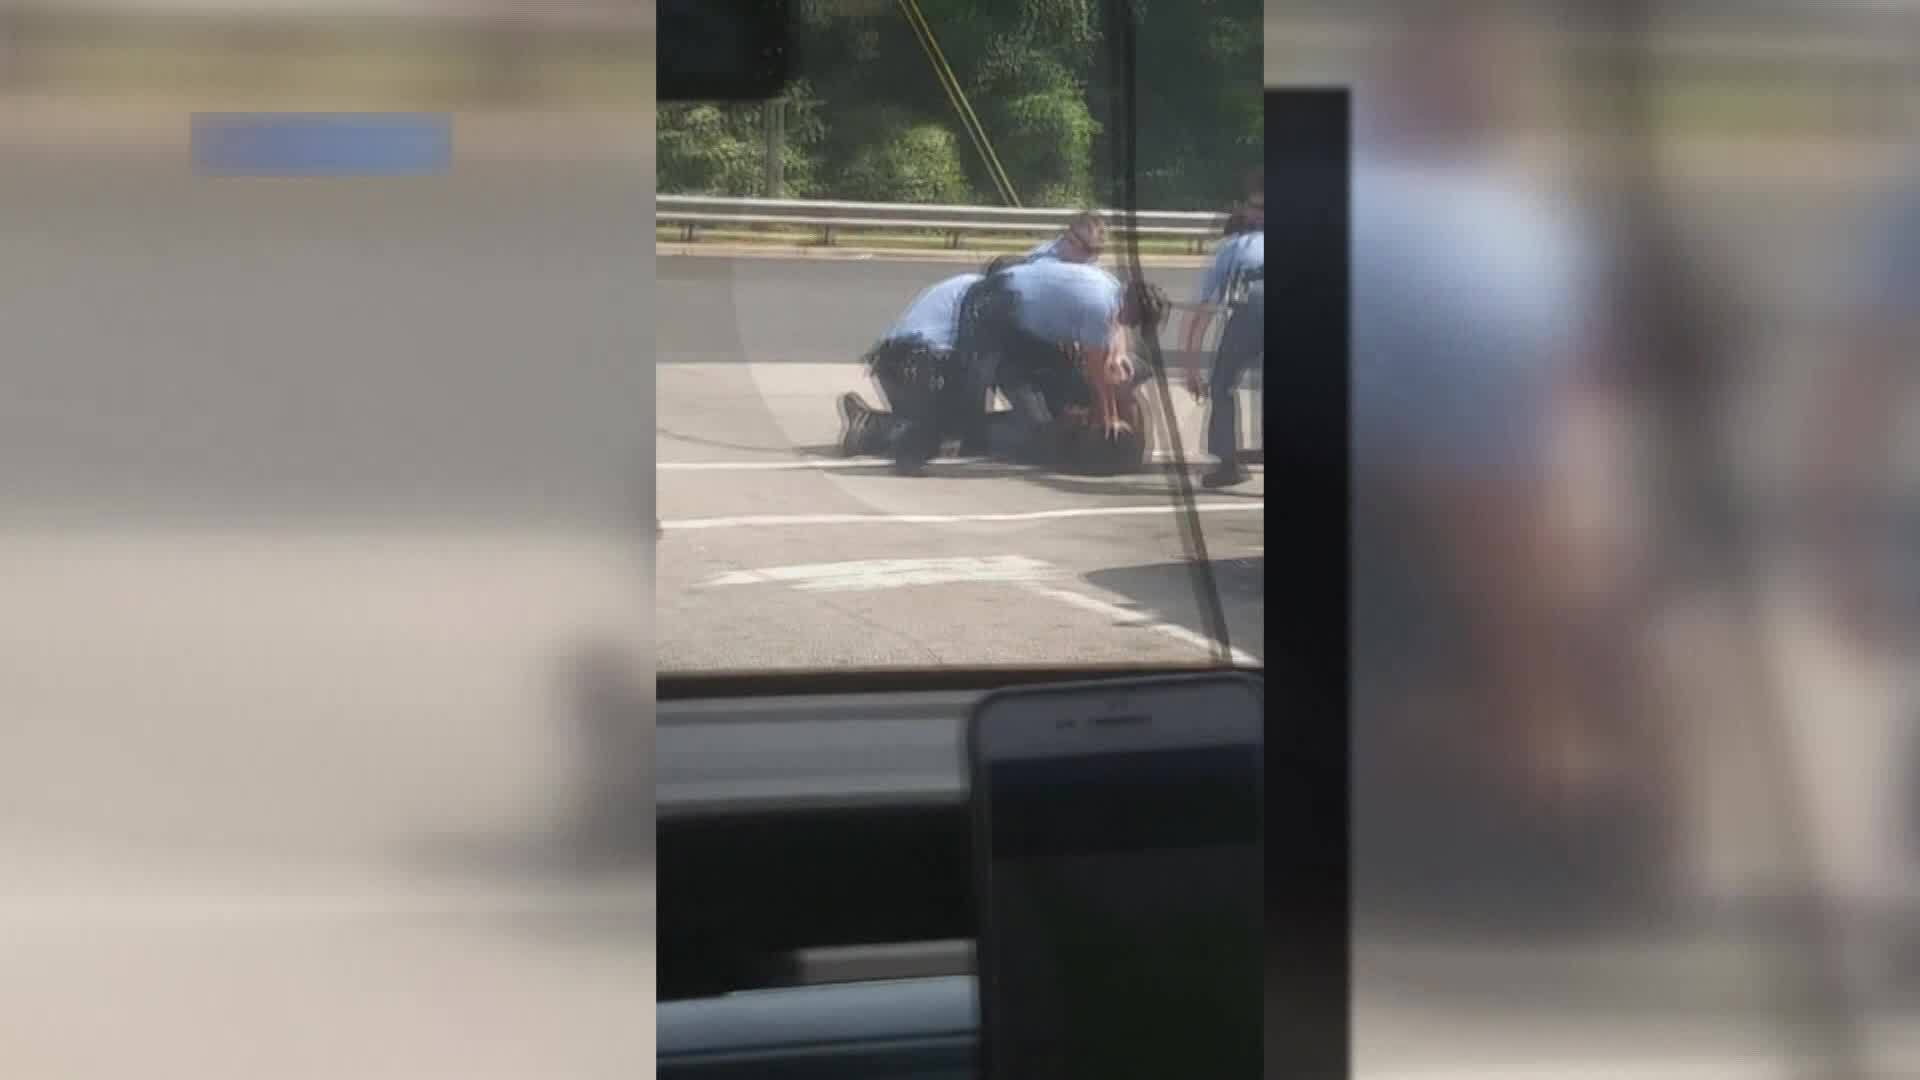 VIDEO__Raleigh_police_use_of_force_0_20180817213319